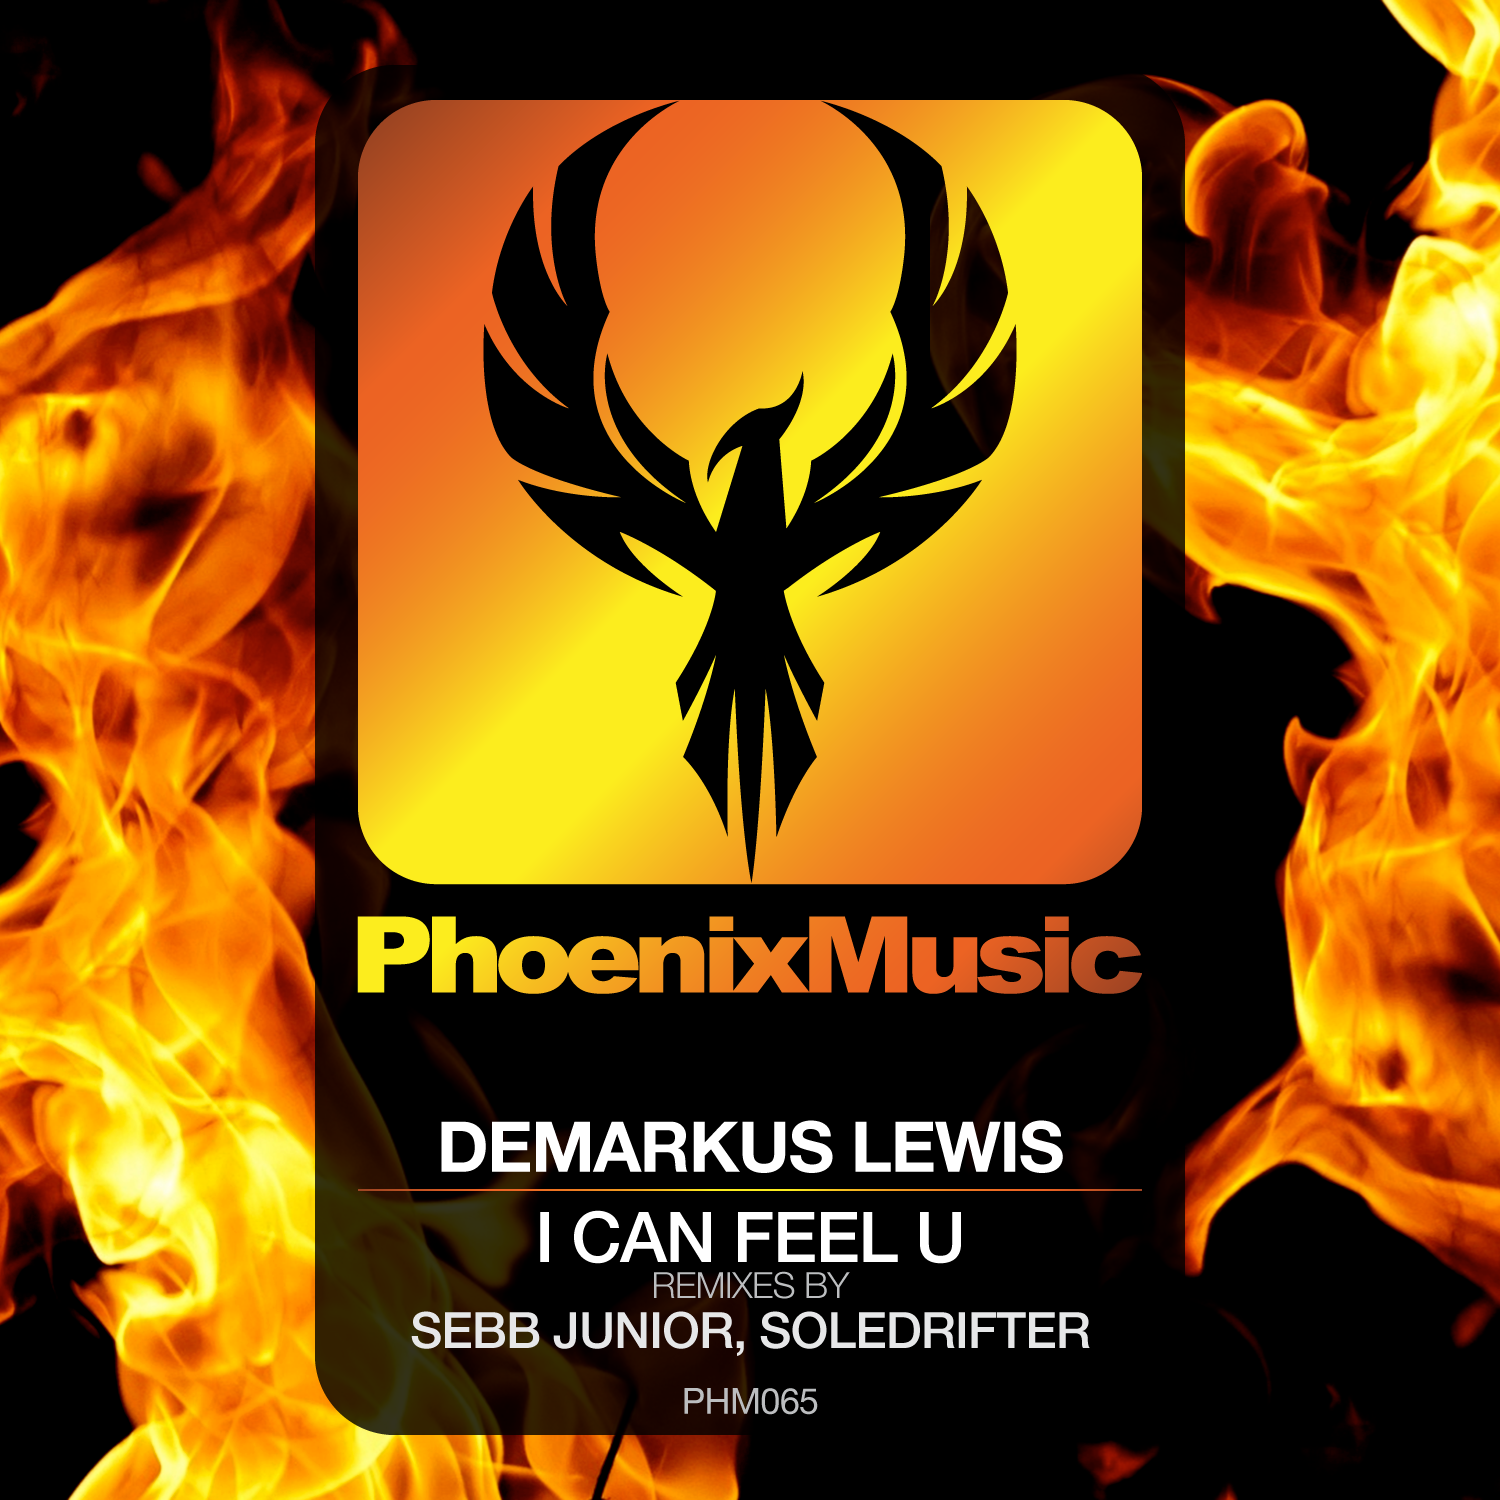 PHM065 Demarkus Lewis - I Can Feel U (Remixes)